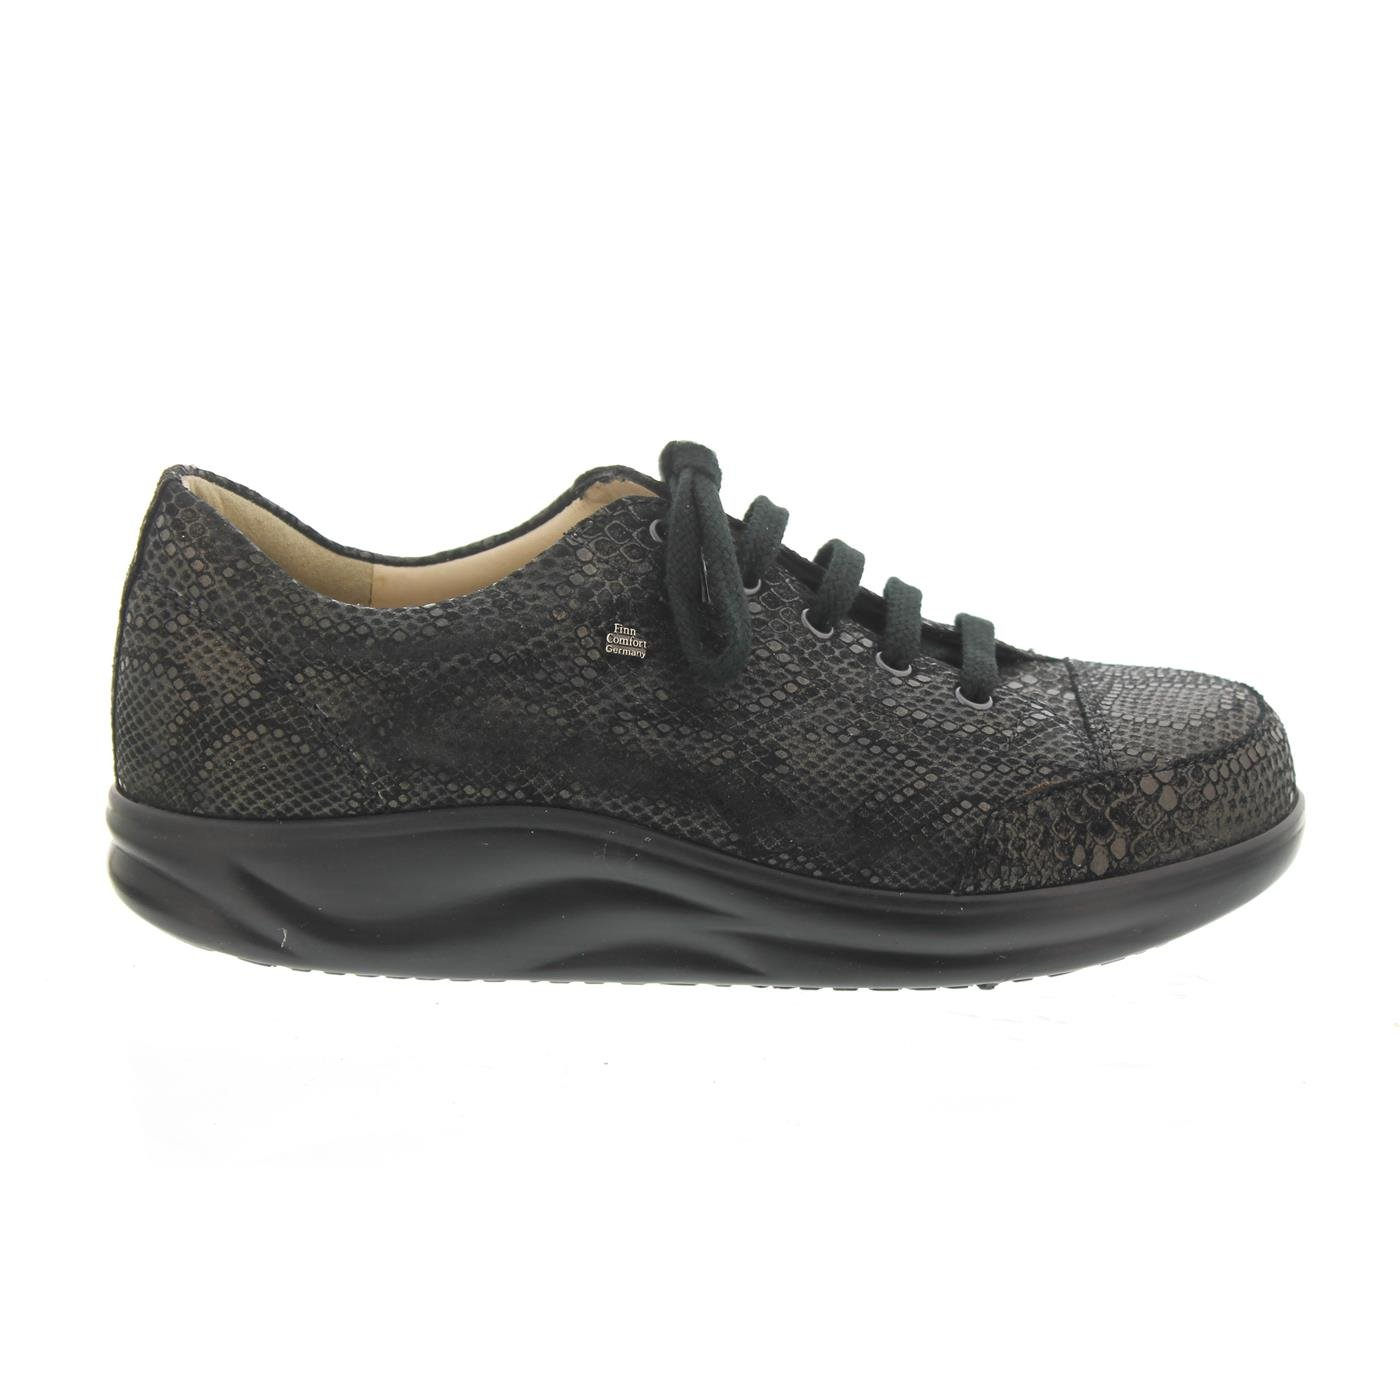 Finn Comfort Women's Ikebukuro Oxford B01CKFNMQG 10 (UK Women's 7.5) Medium|Bronzo Python